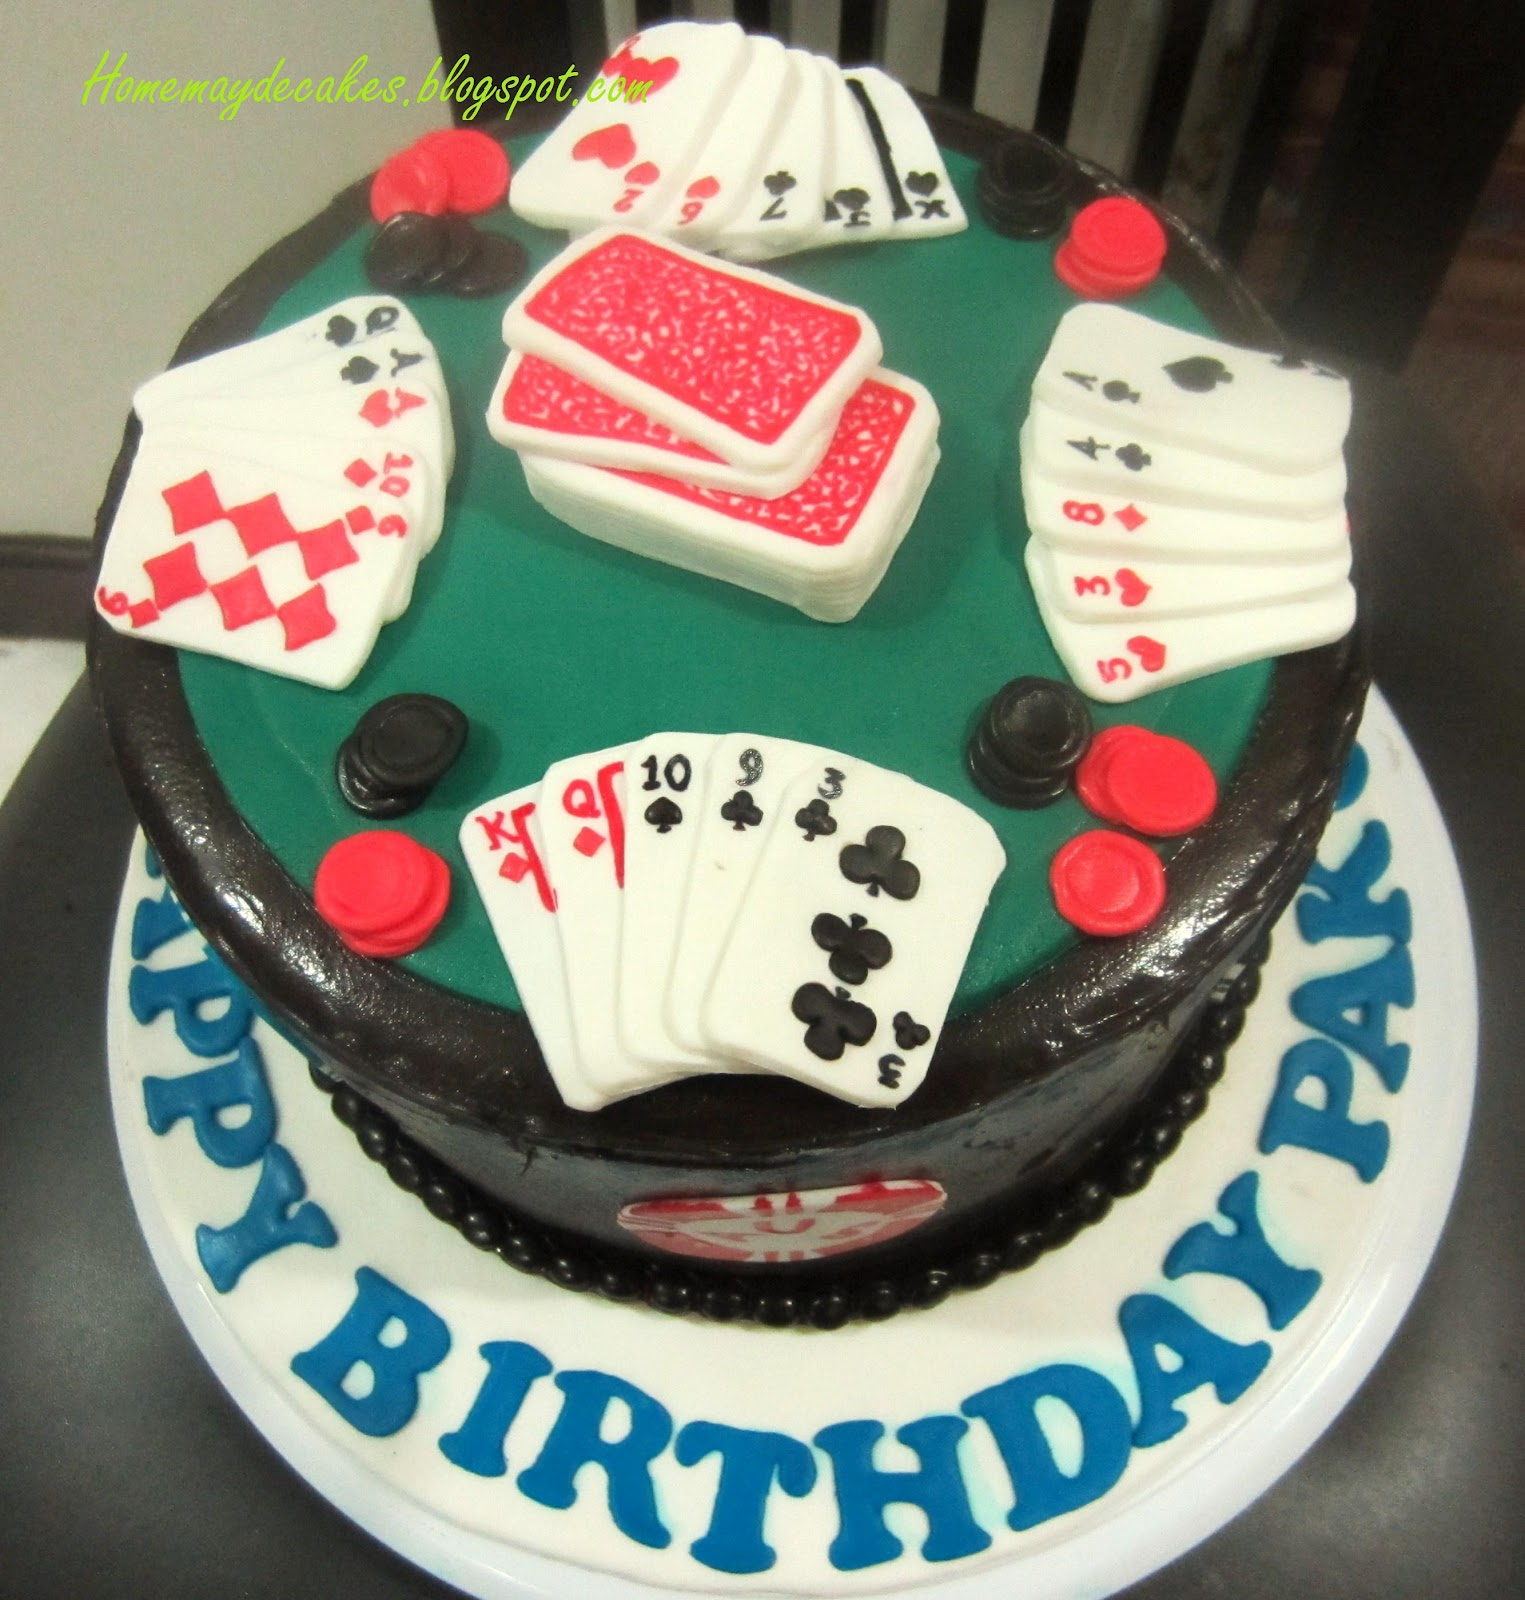 Home Mayde Cakes The Making Poker Table With Chips Cake